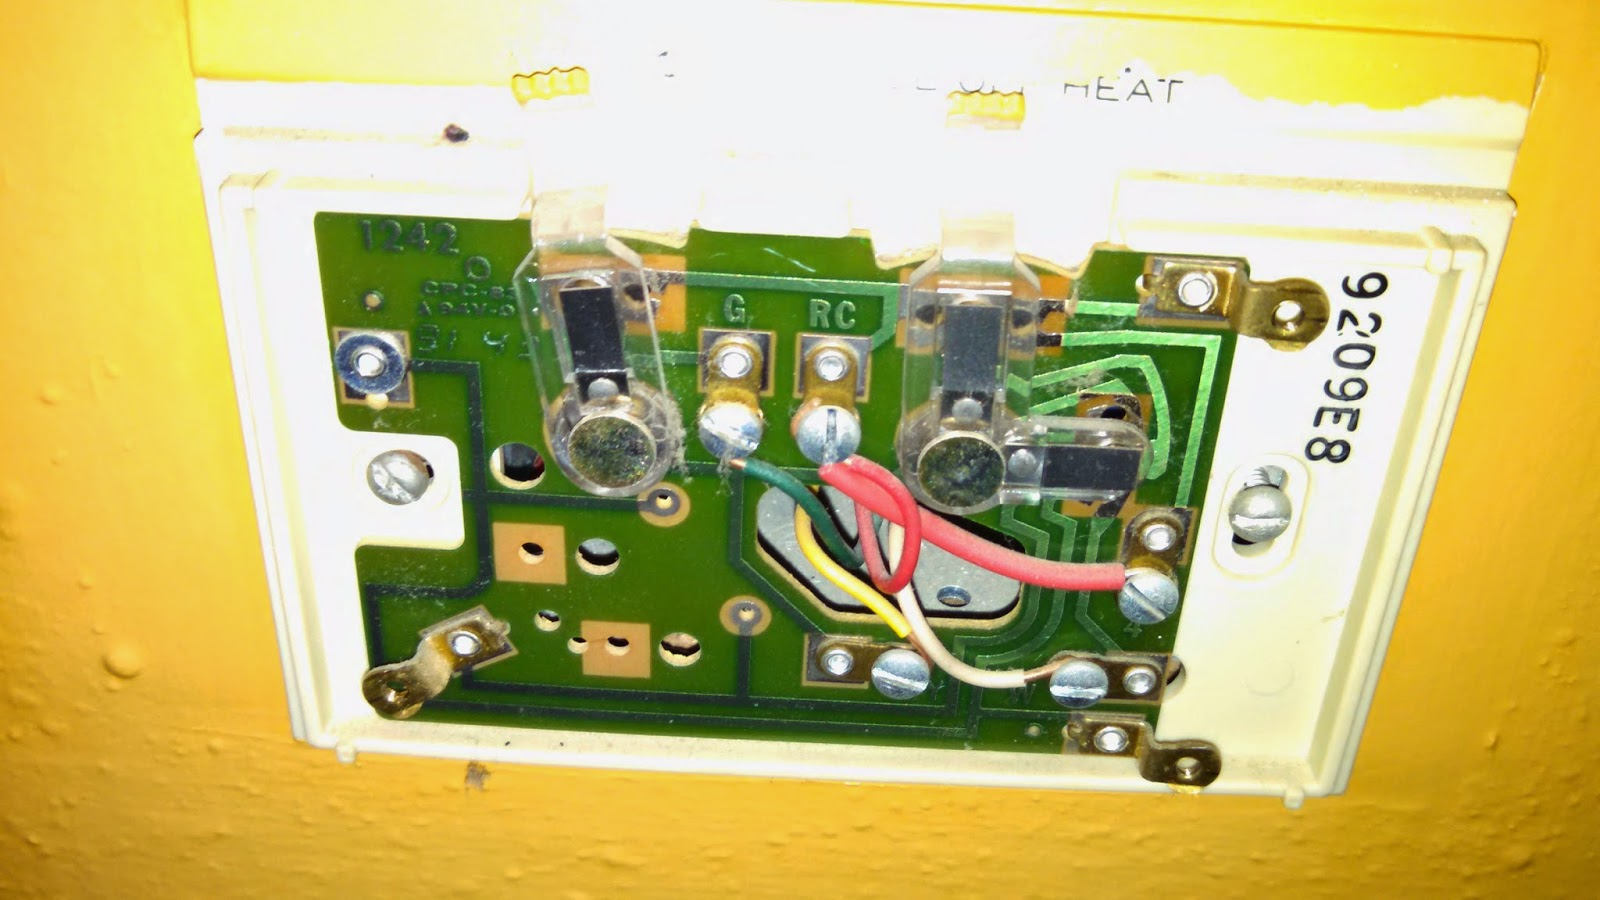 hight resolution of circuit card and wire connections in old thermostat image source dr penny pincher